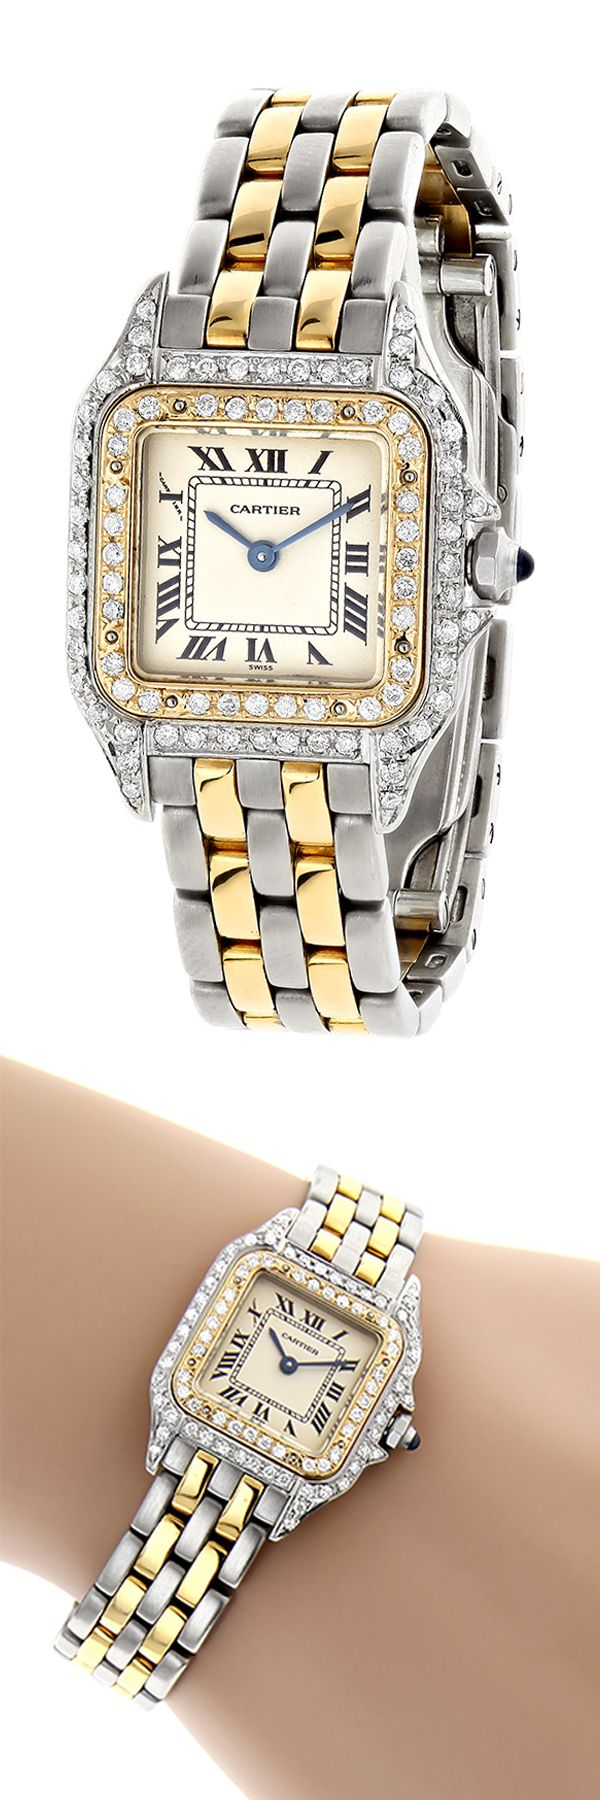 This fabulous Ladies Cartier Panthere Mini 18K Gold & Steel Two-Tone Vintage Diamond Watch showcases two tone solid 18K gold and stainless steel case set with 0.75 carats genuine round diamonds. This iconic ladies diamond watch is battery operated with a Swiss quartz movement. Featuring a stainless steel and 18K solid yellow gold with custom set diamonds bezel, 18K gold and stainless steel band with a hidden folding deployment clasp and an off white dial.